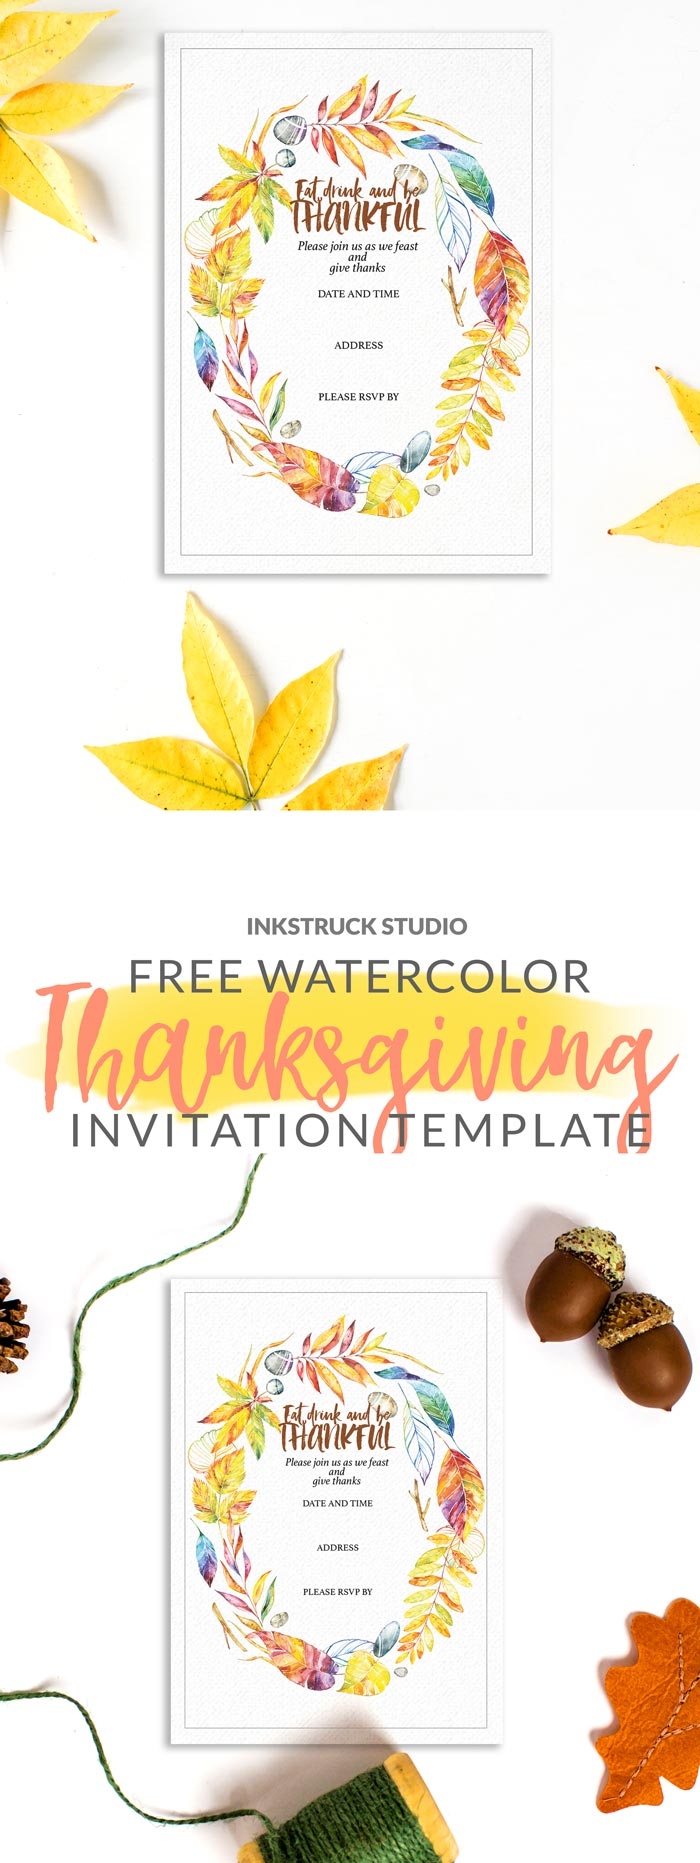 Free watercolor invitation template for thanksgiving inkstruck download these free watercolor invitation templates for thanksgiving to hand out to your loved ones stopboris Gallery